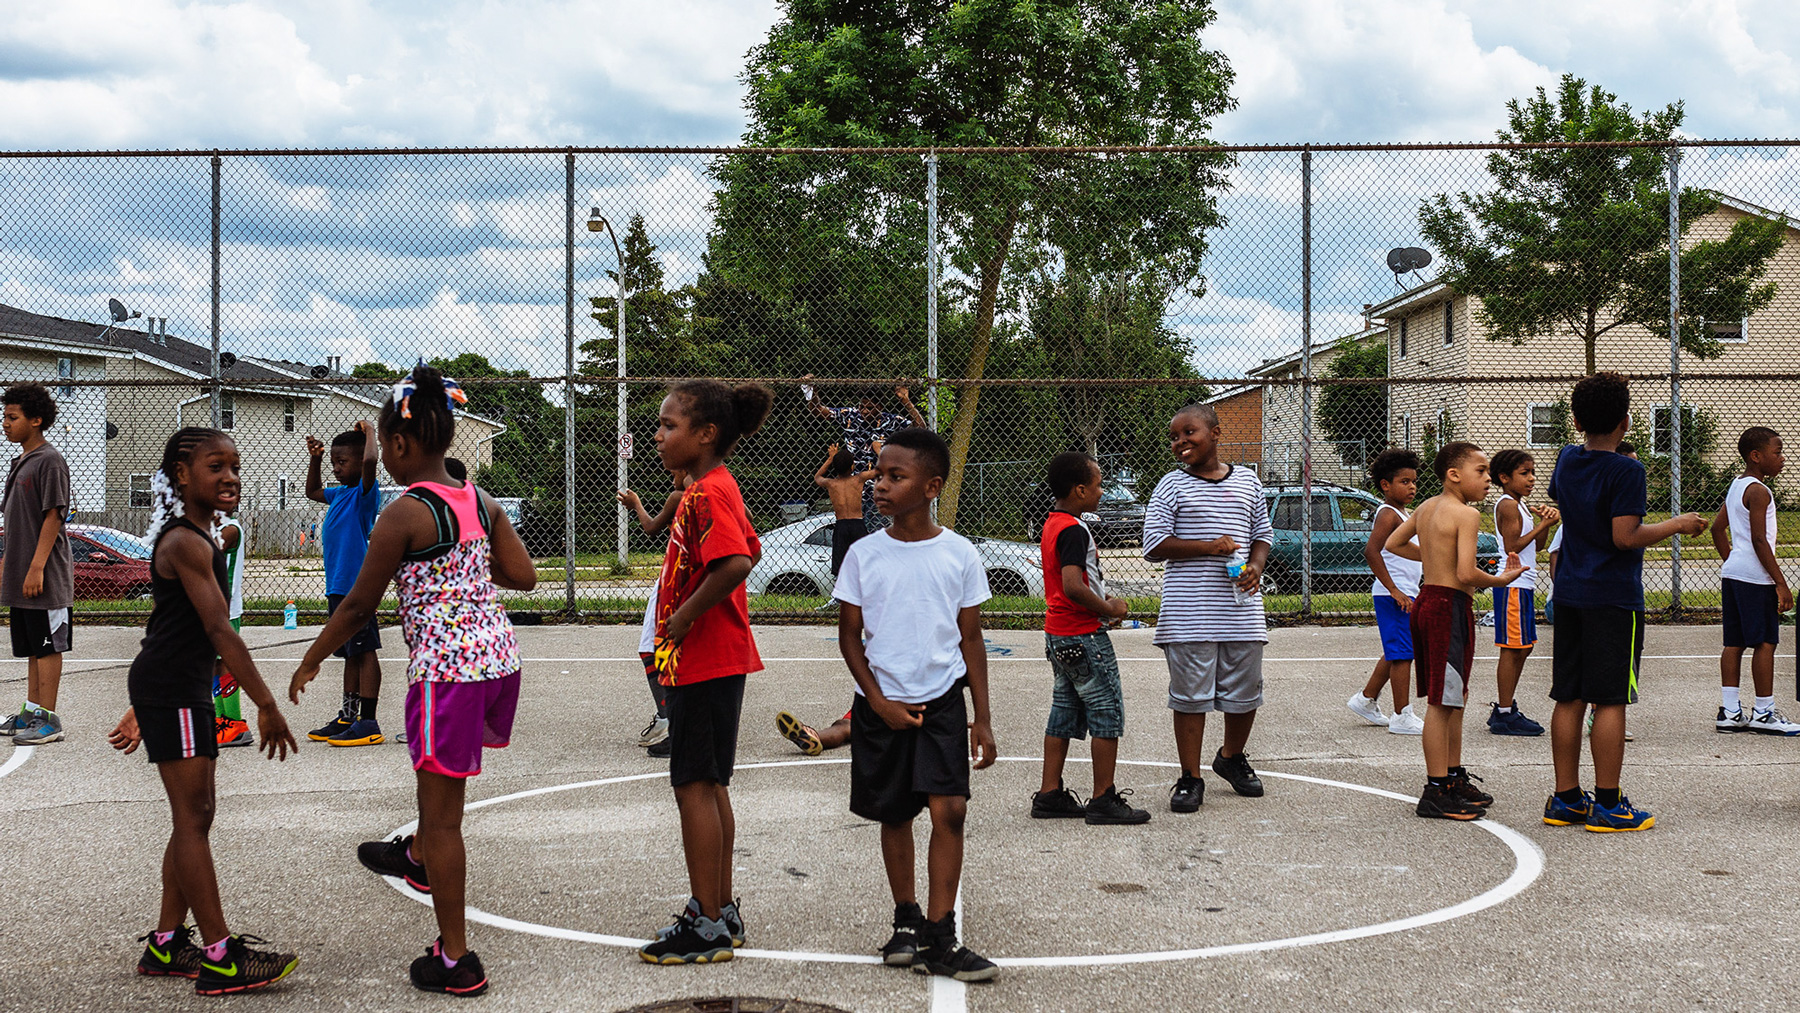 Children from the north side of Milwaukee line up for basketball practice in the first junior basketball league day of the summer. (Michael M. Santiago/News21)